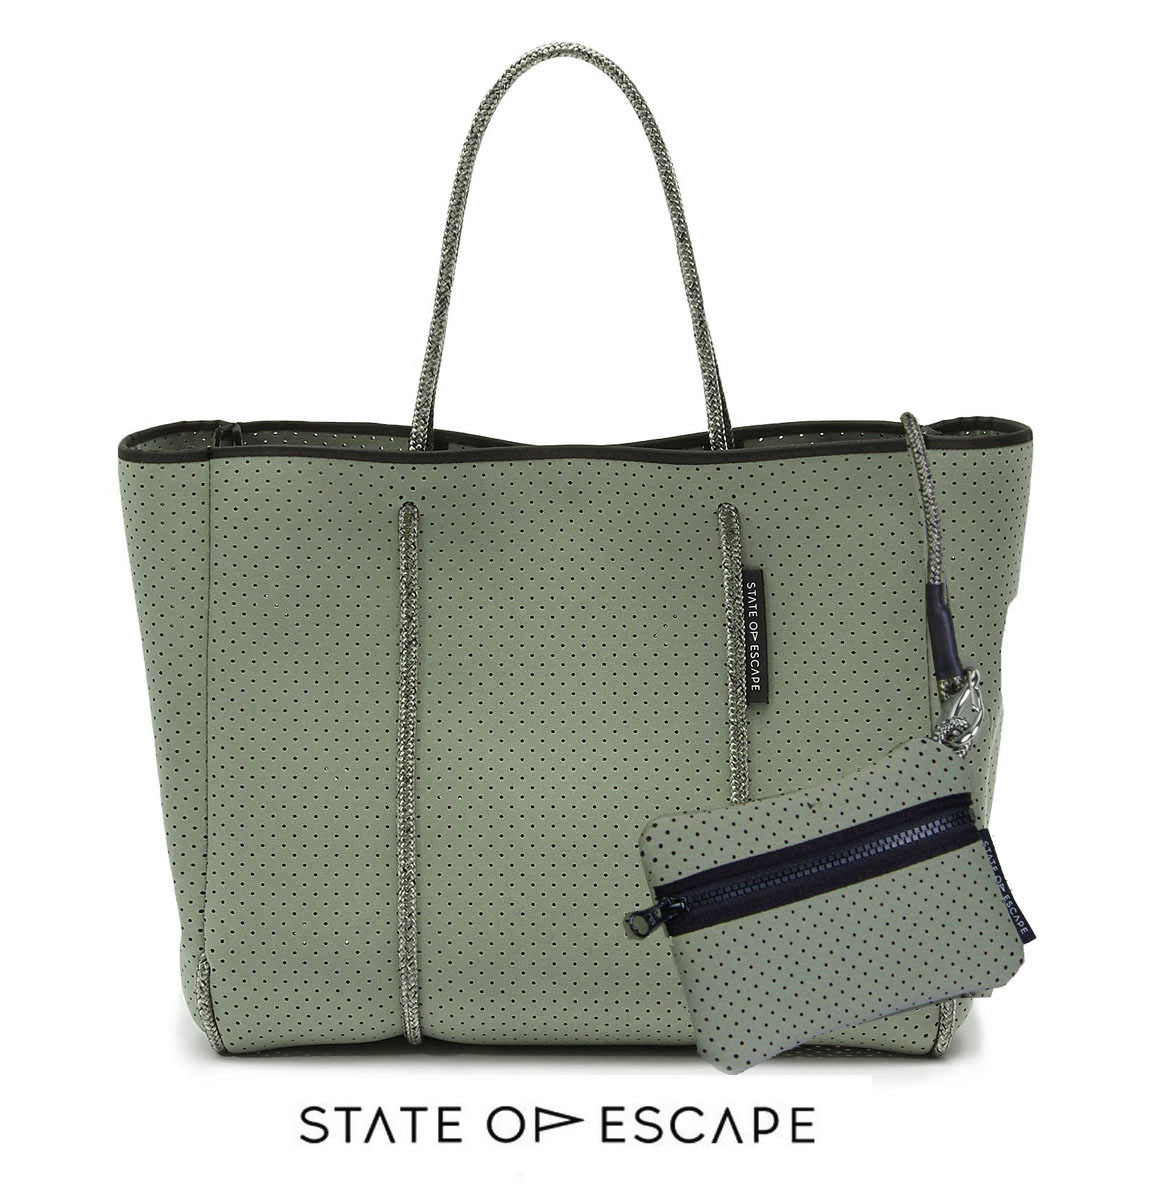 1b62c66a1d56 送料無料! State of Escape(ステイトオブエスケープ)Sage Green/セージグリーン